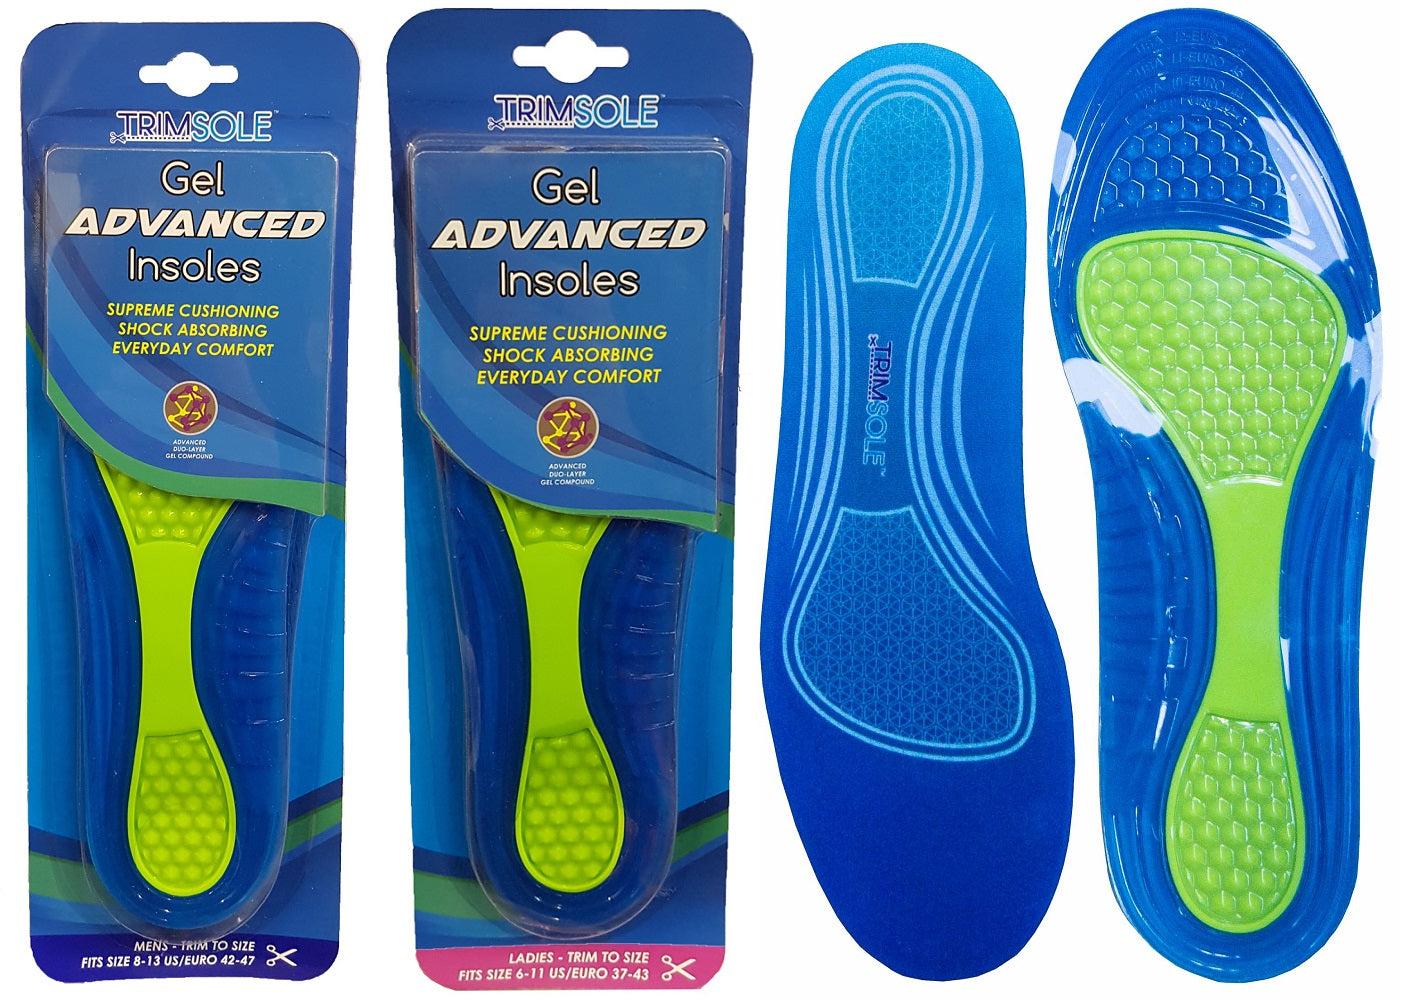 Gel Advanced Insoles